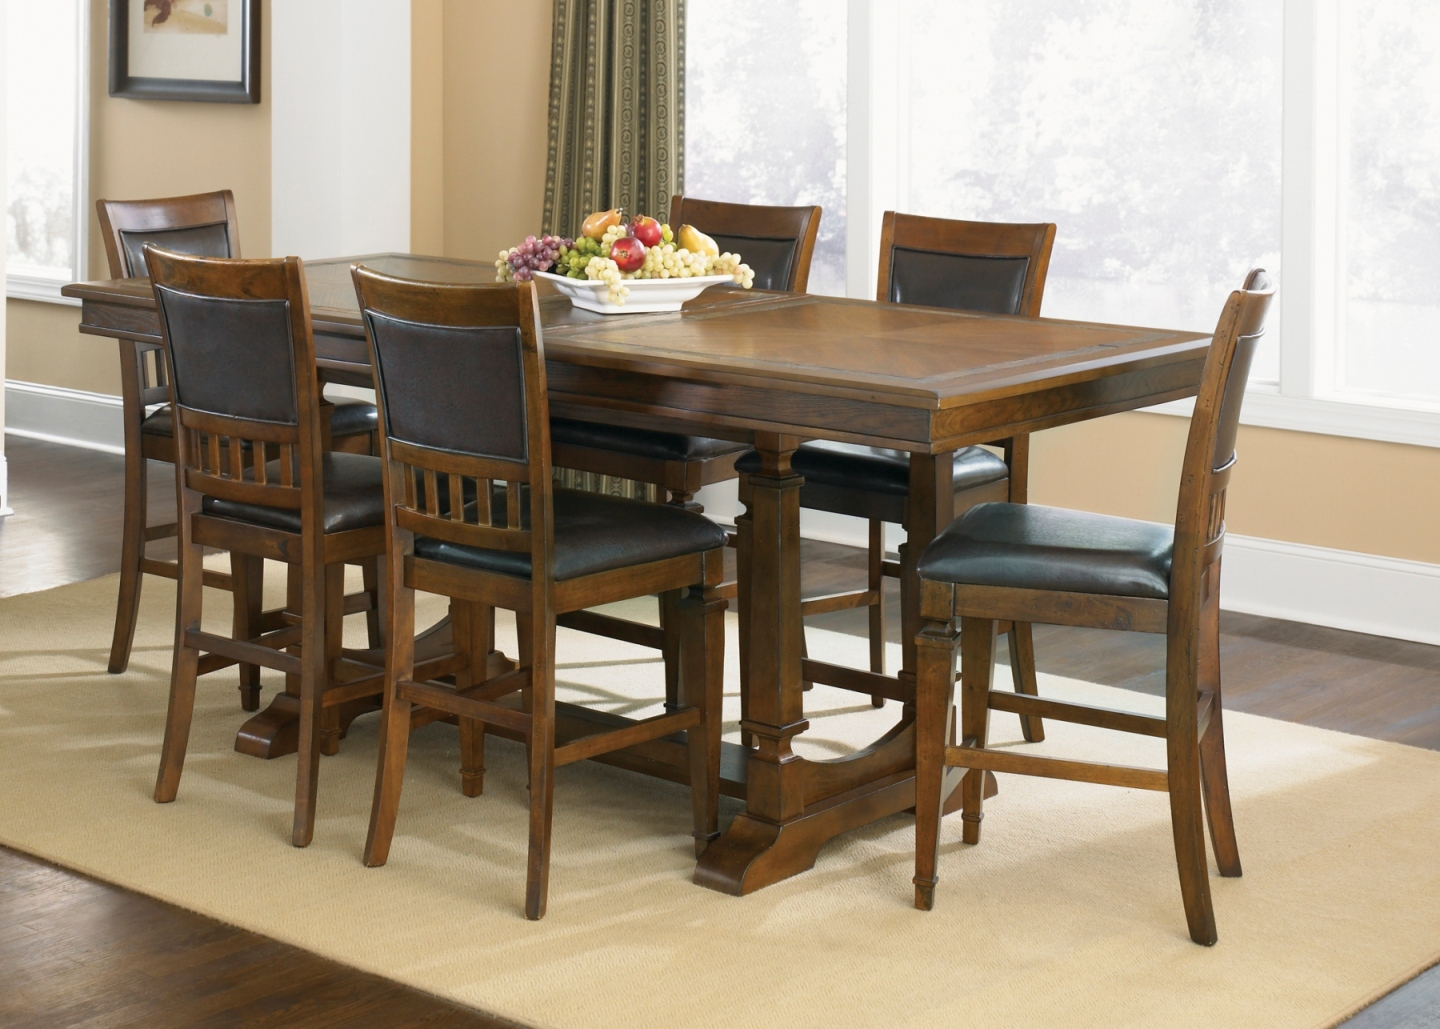 dining-room-tables-ikea-perfect-about-remodel-home-design-ideas-with-dining-room-tables-ikea